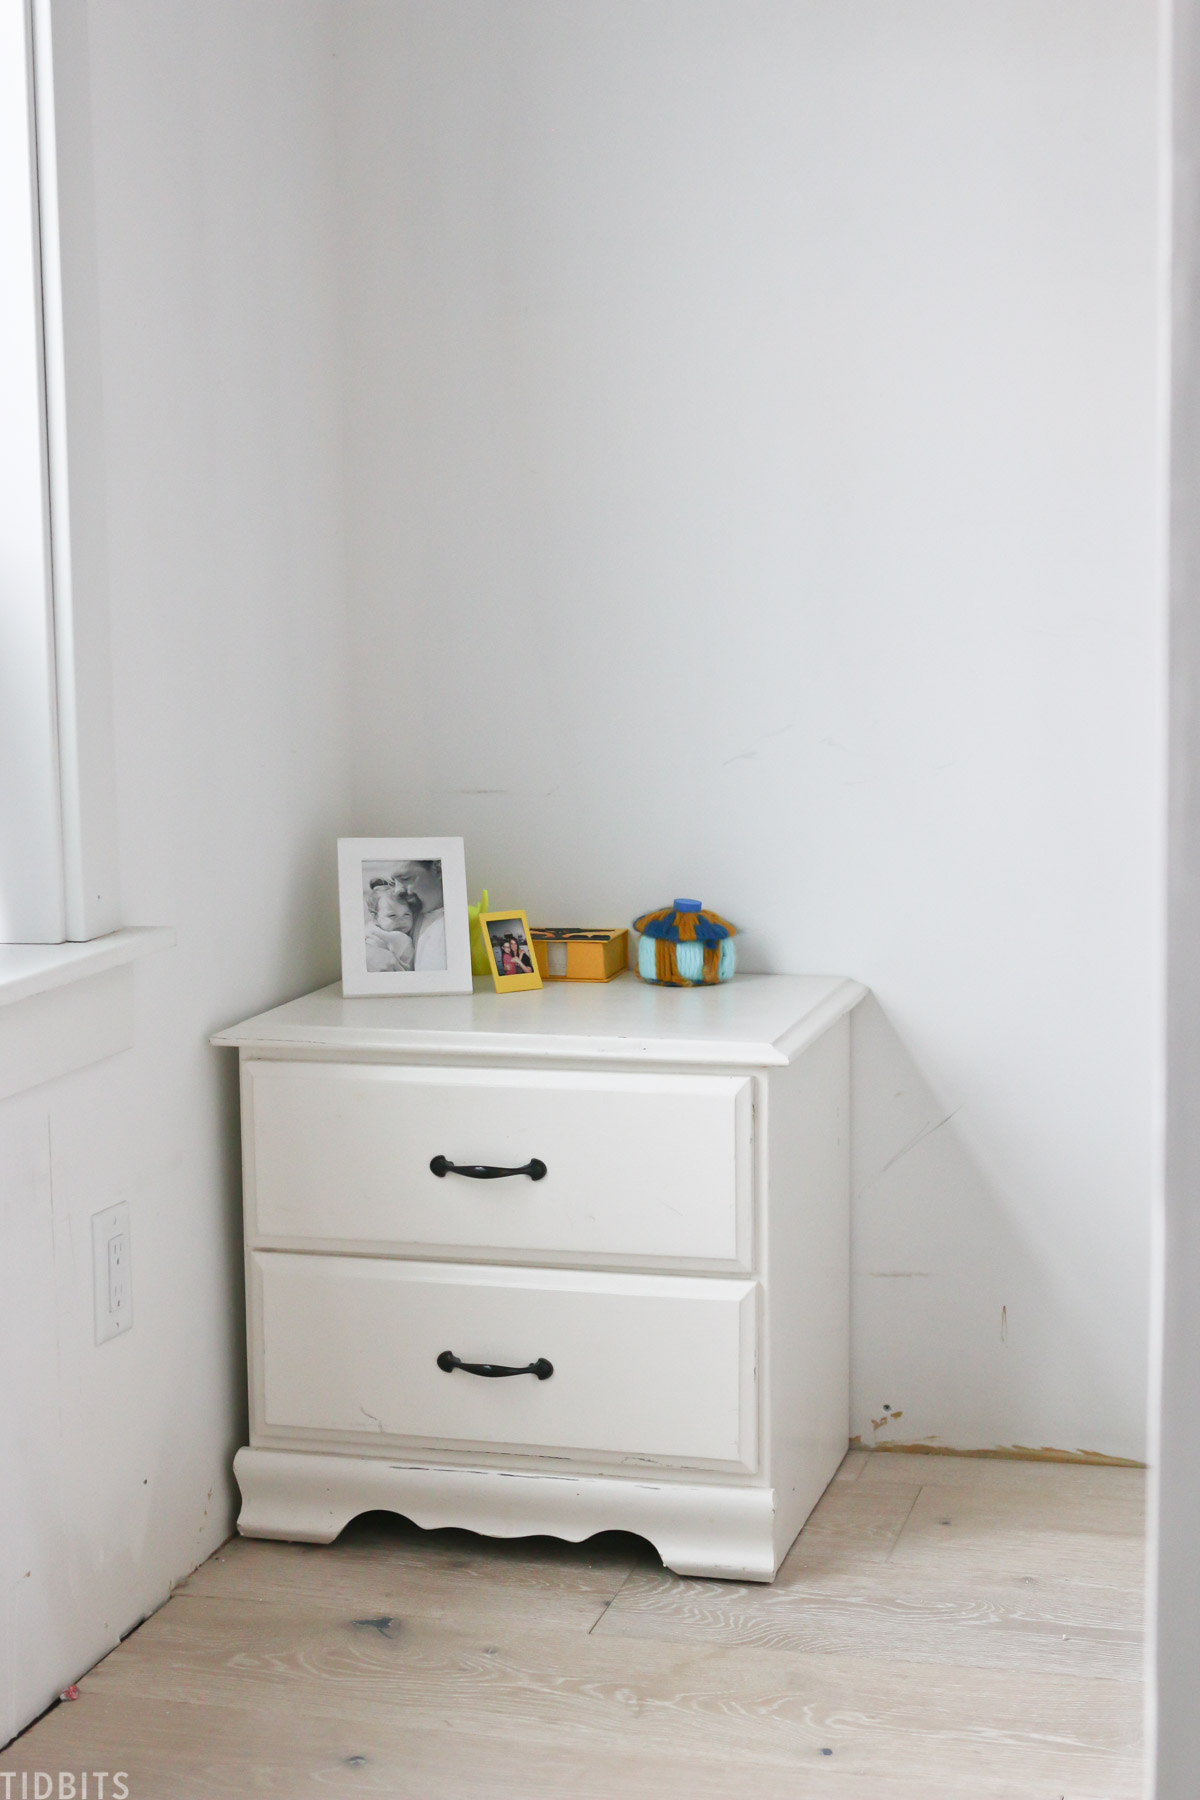 side table placed in corner of kids' bedroom, showing that flooring and wall are in progress during remodel